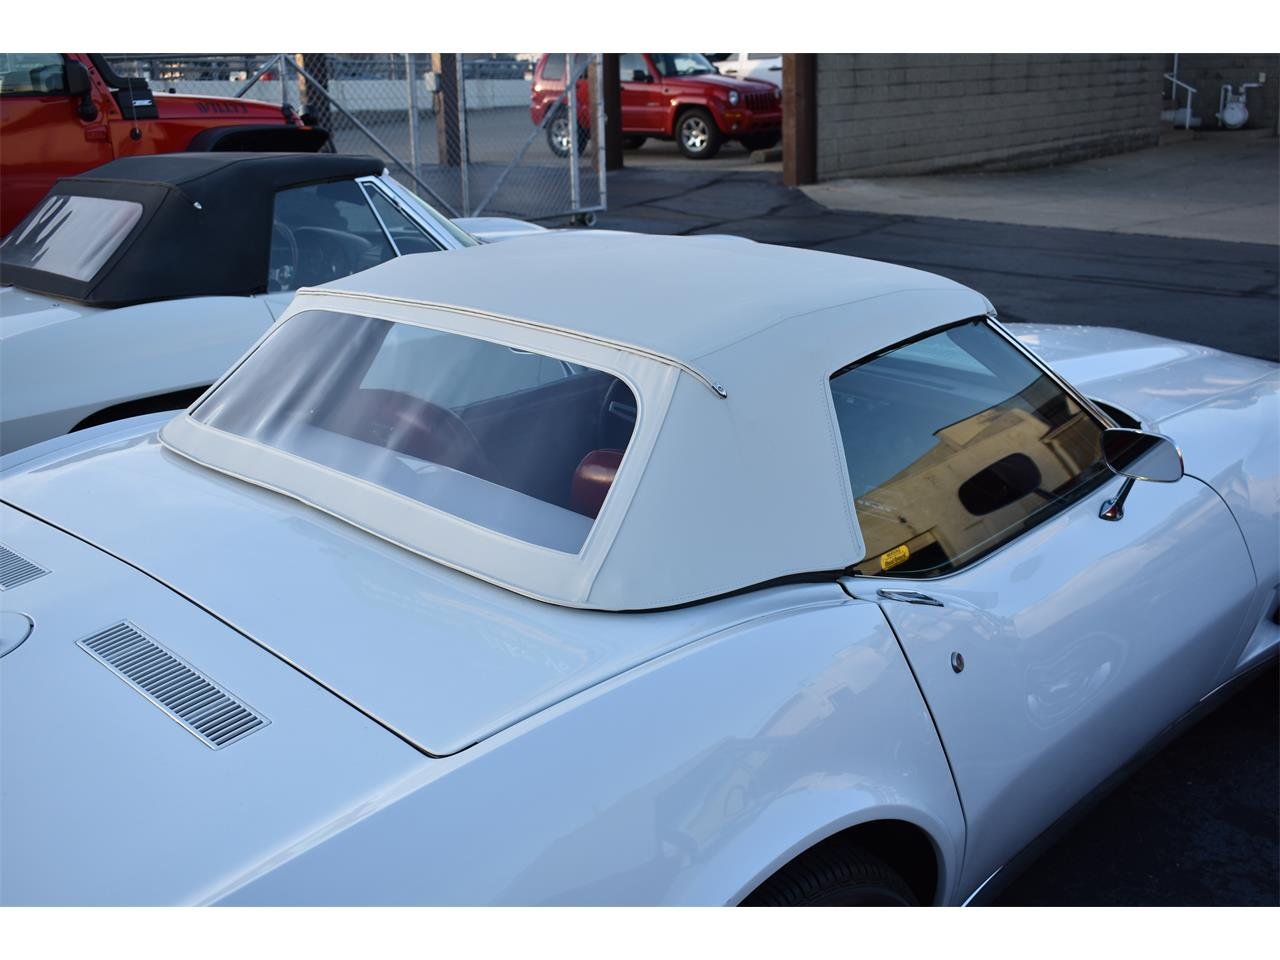 Large Picture of '73 Corvette located in Arizona - $29,900.00 Offered by a Private Seller - Q67L